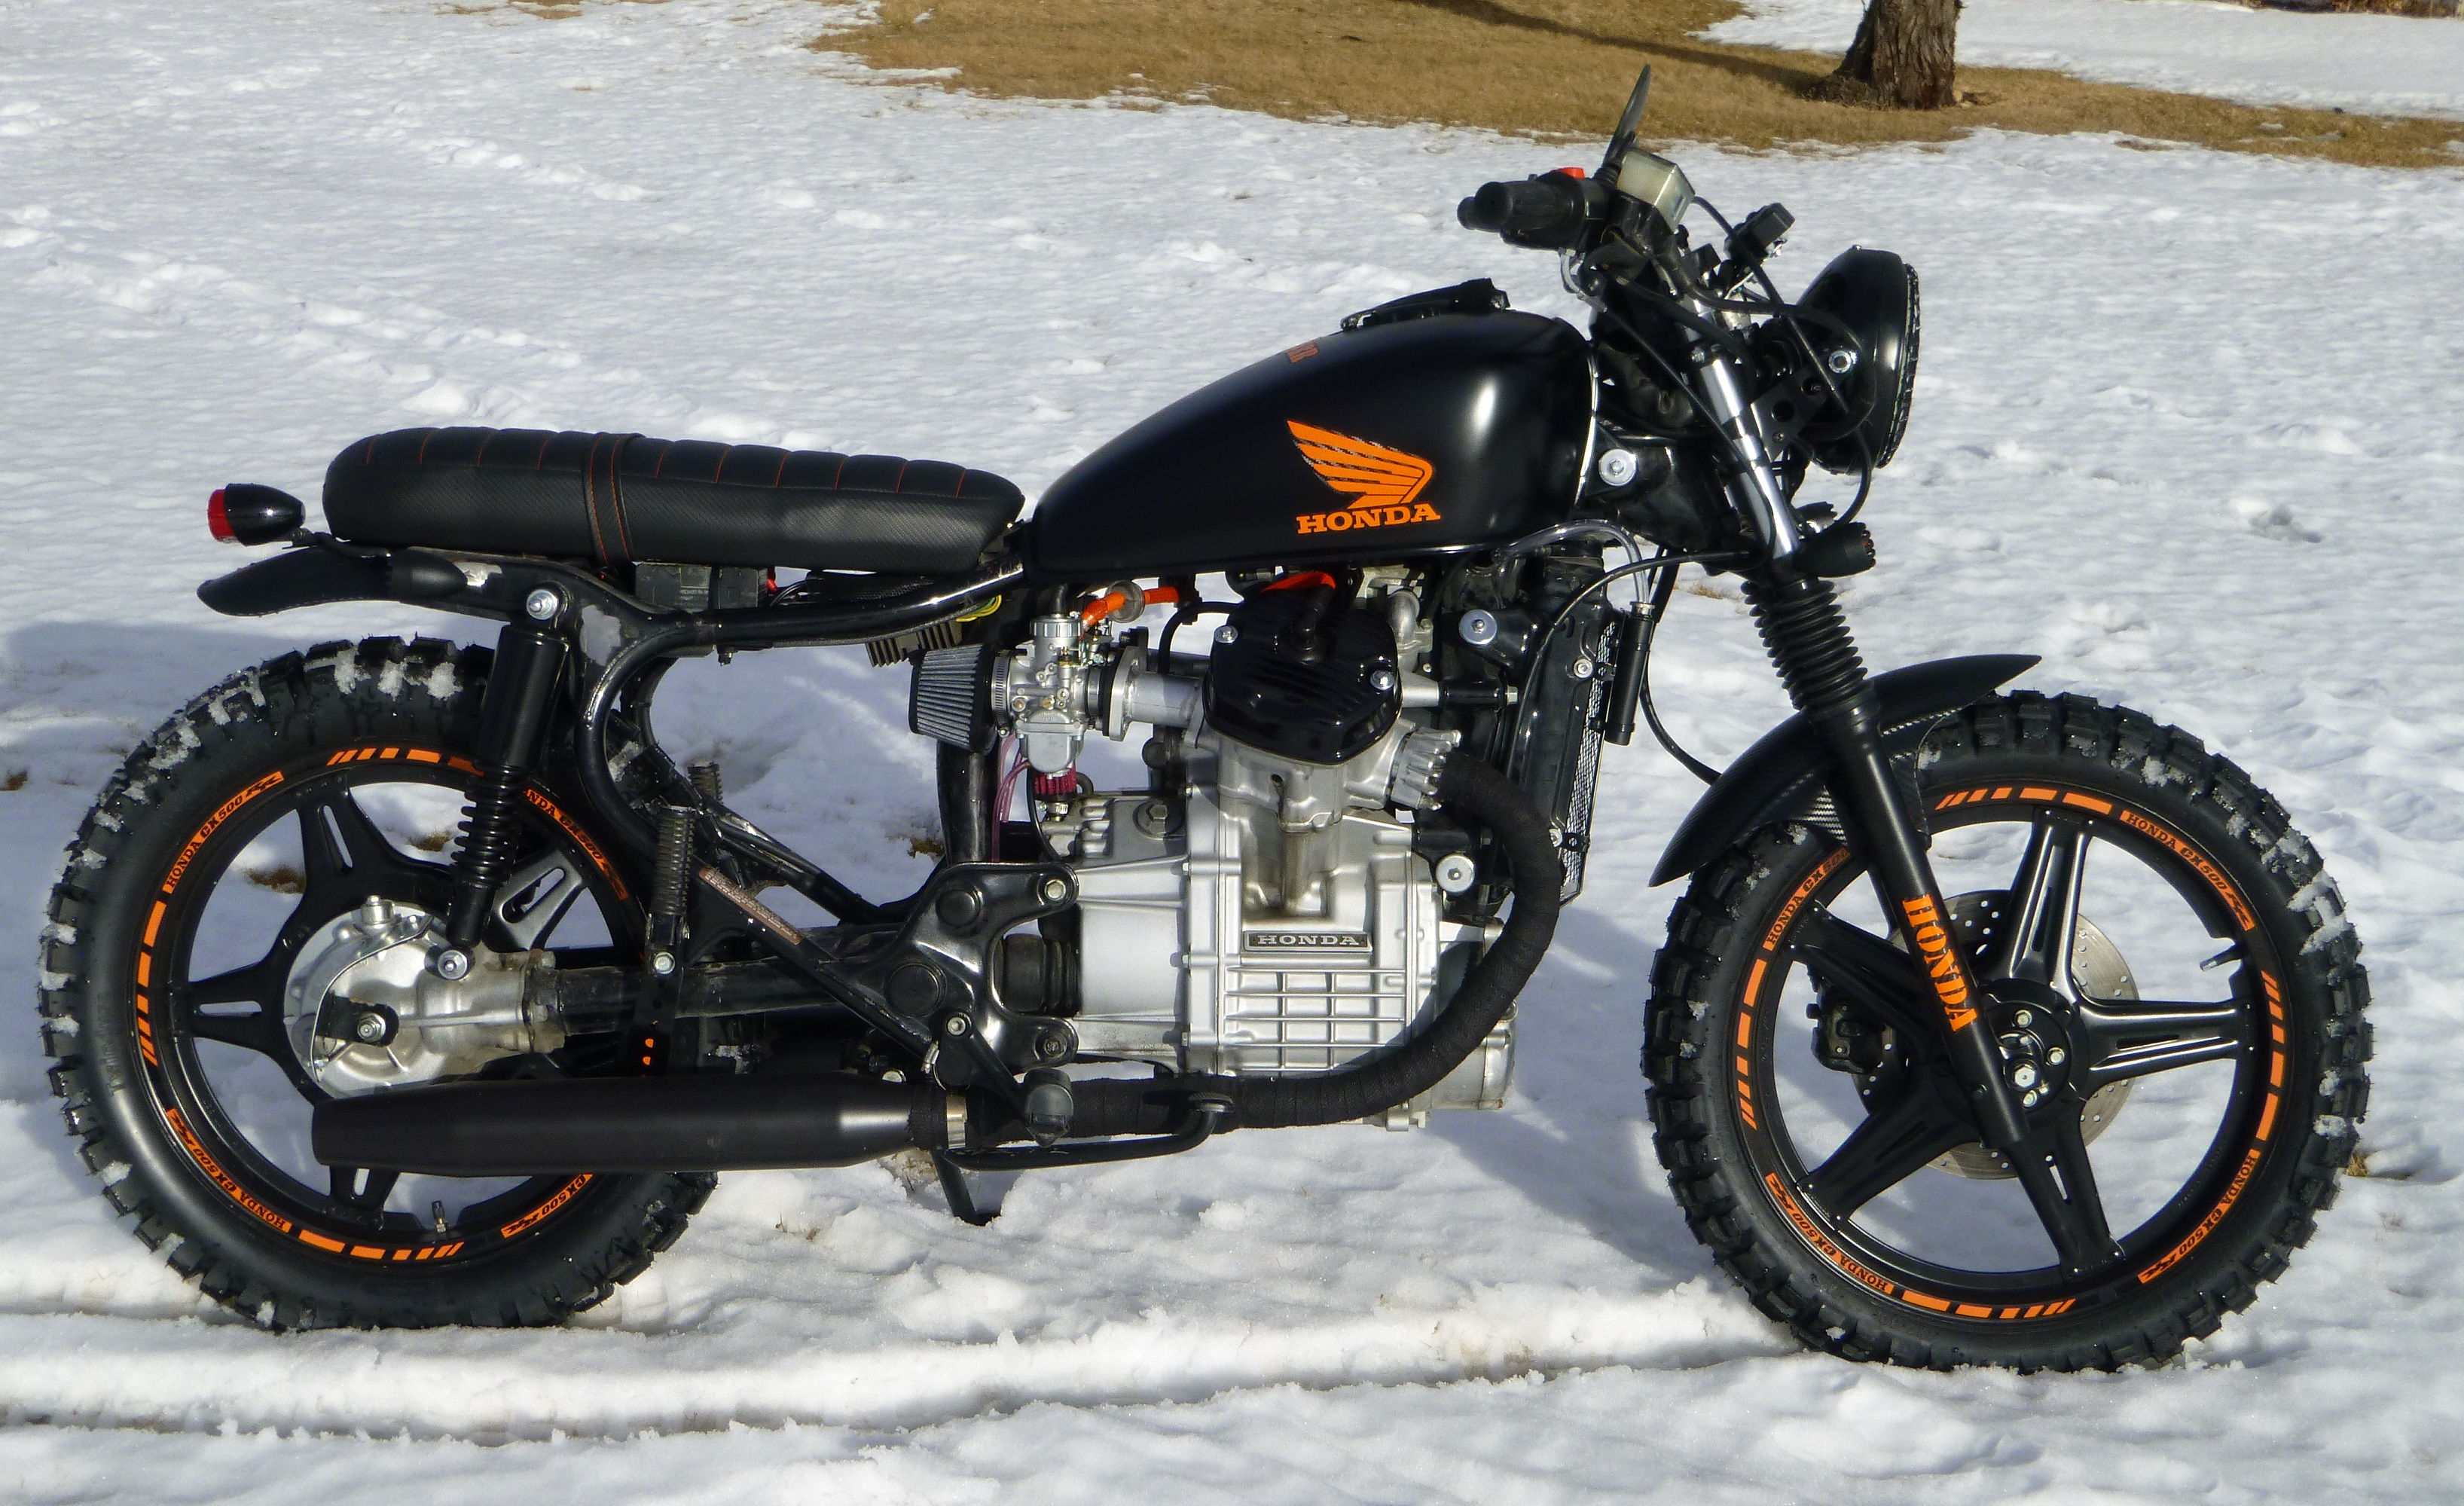 1982 CX 500 Street Tracker Build